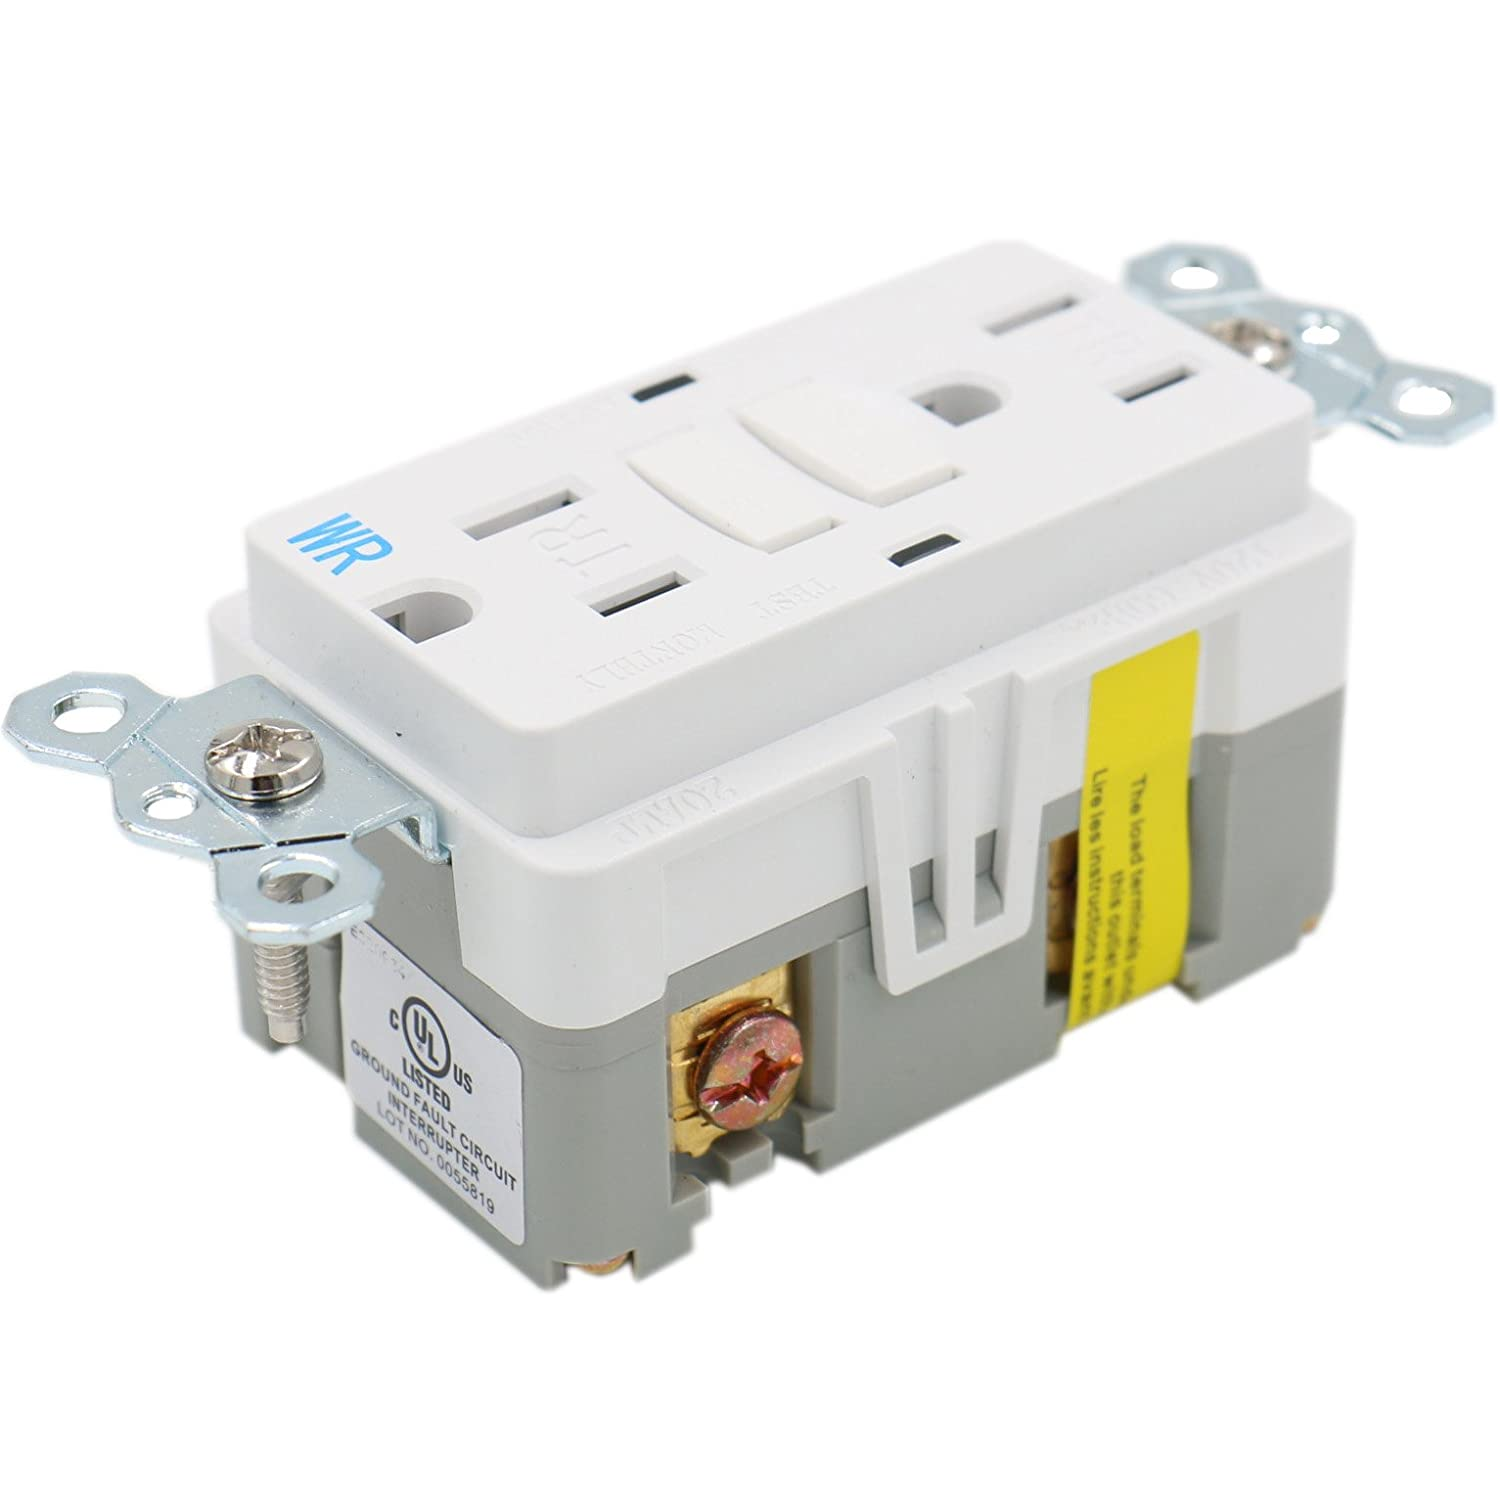 Baomain Gfci Outlet Receptacle 15amp 120vac 60hz Weather Resistant Fault Circuit Interrupter Ground And Tamper Interruptor